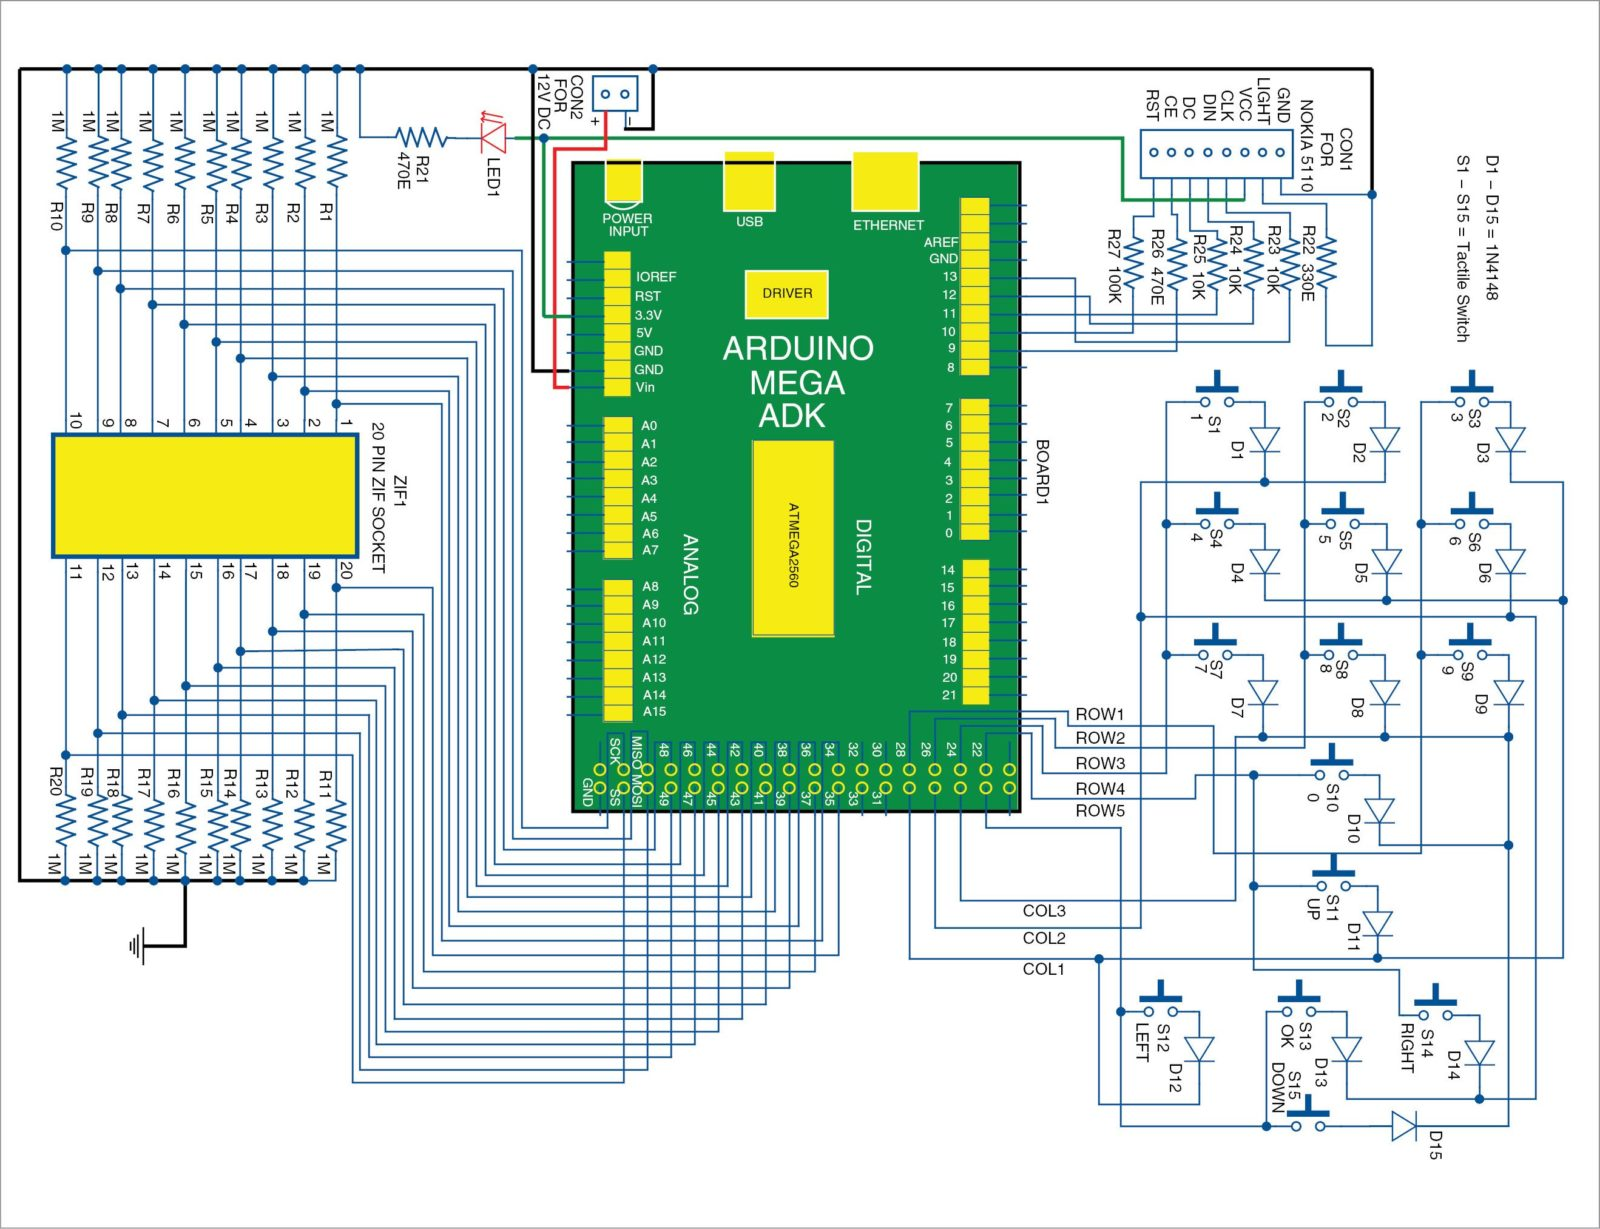 3: Circuit diagram of the arduino based digital IC tester